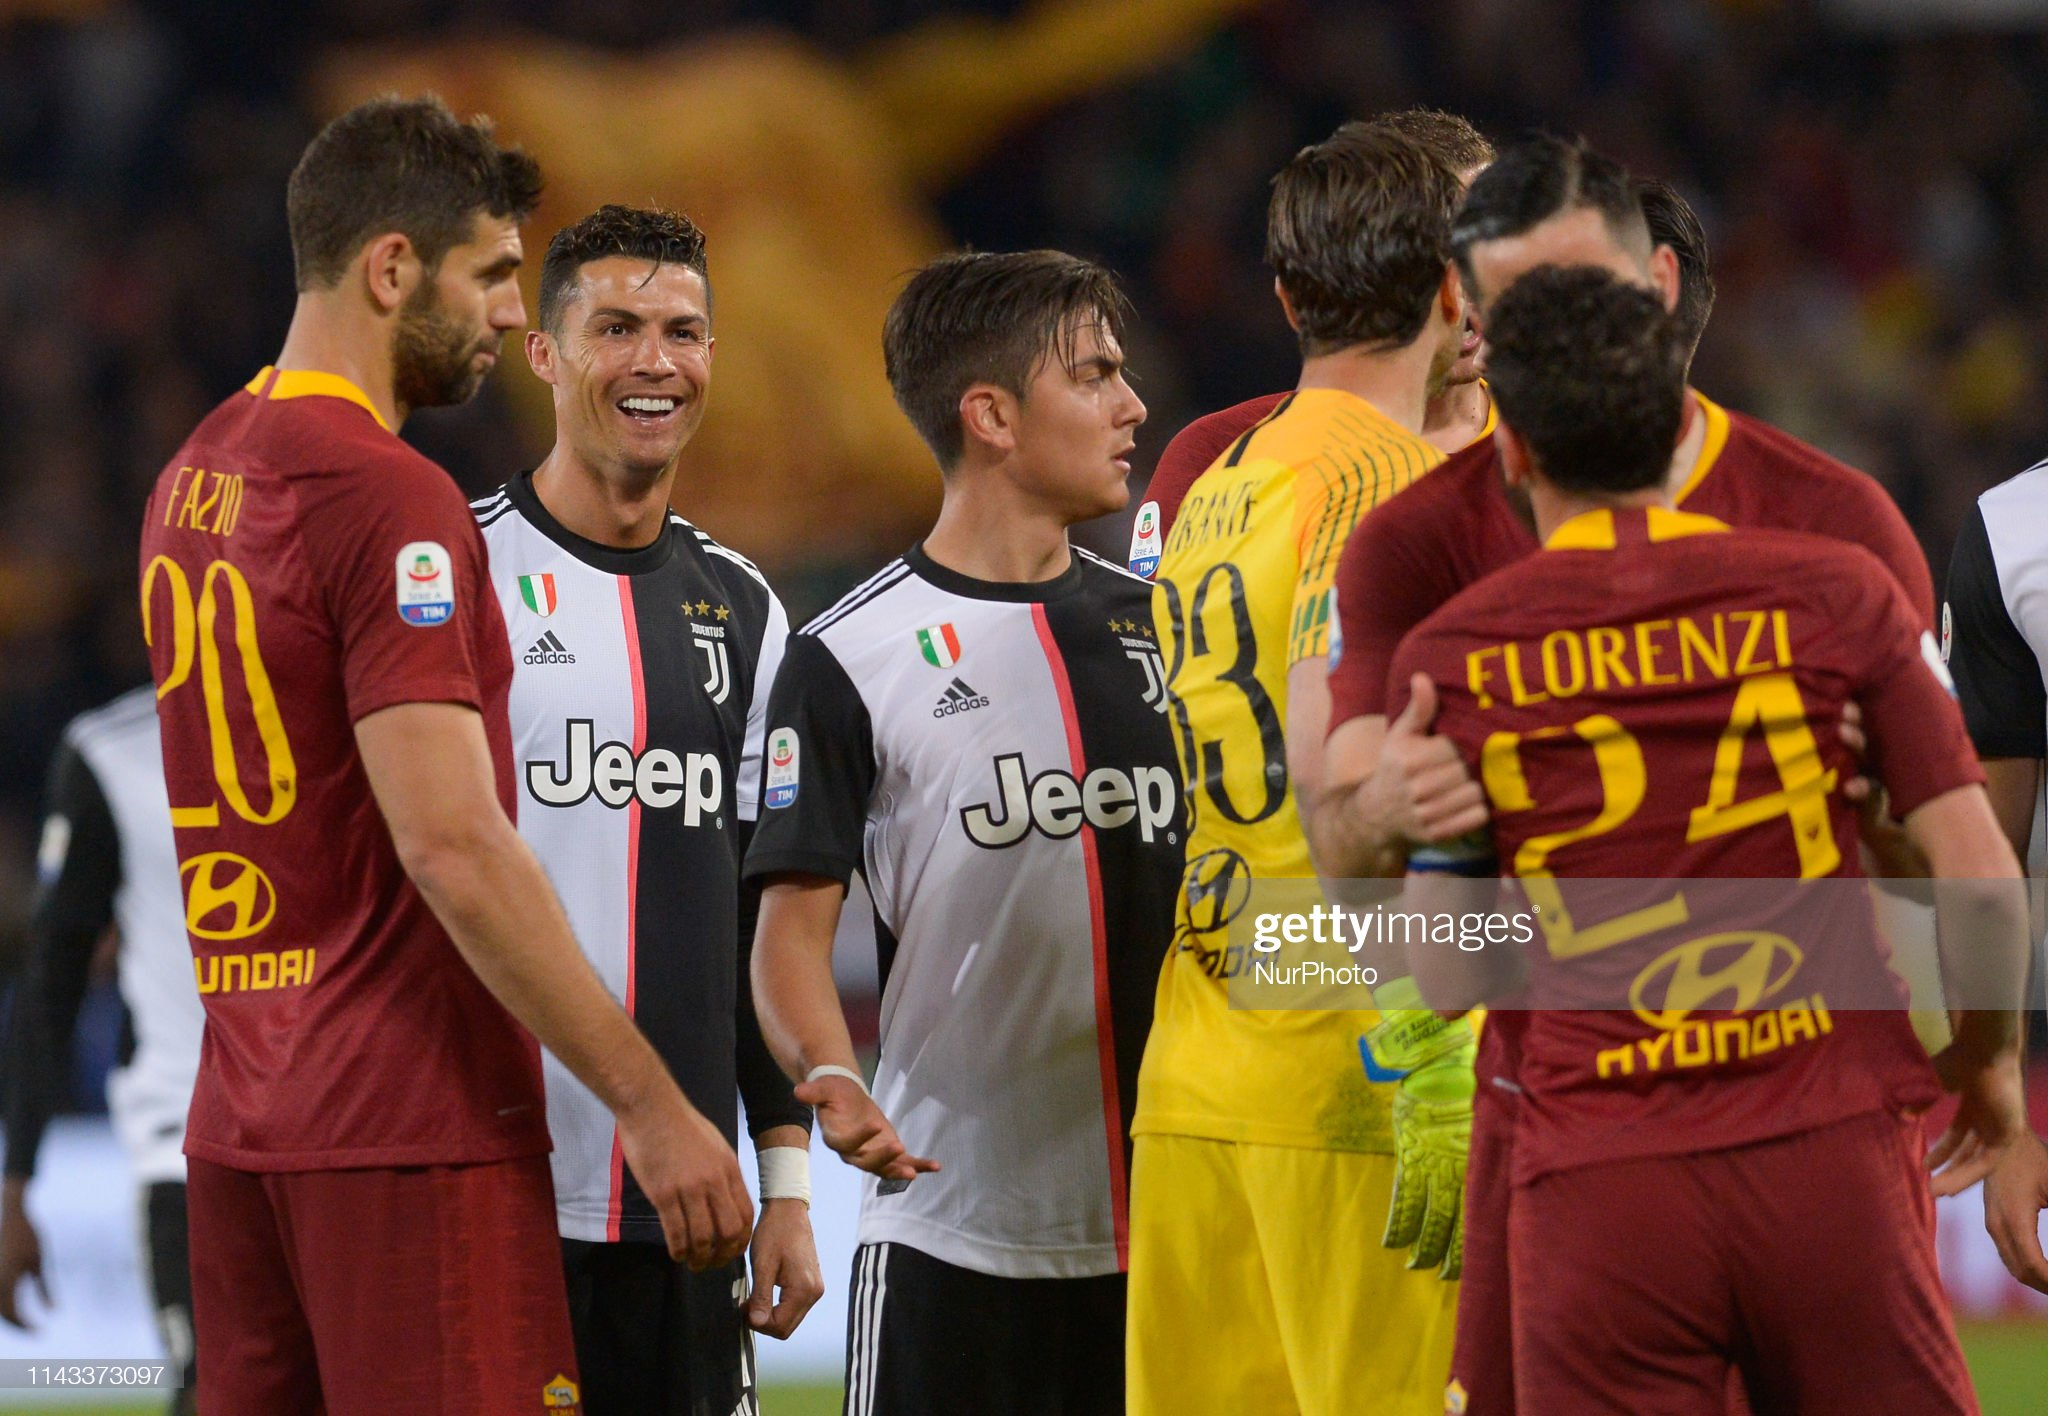 Roma v Juventus preview, prediction and odds